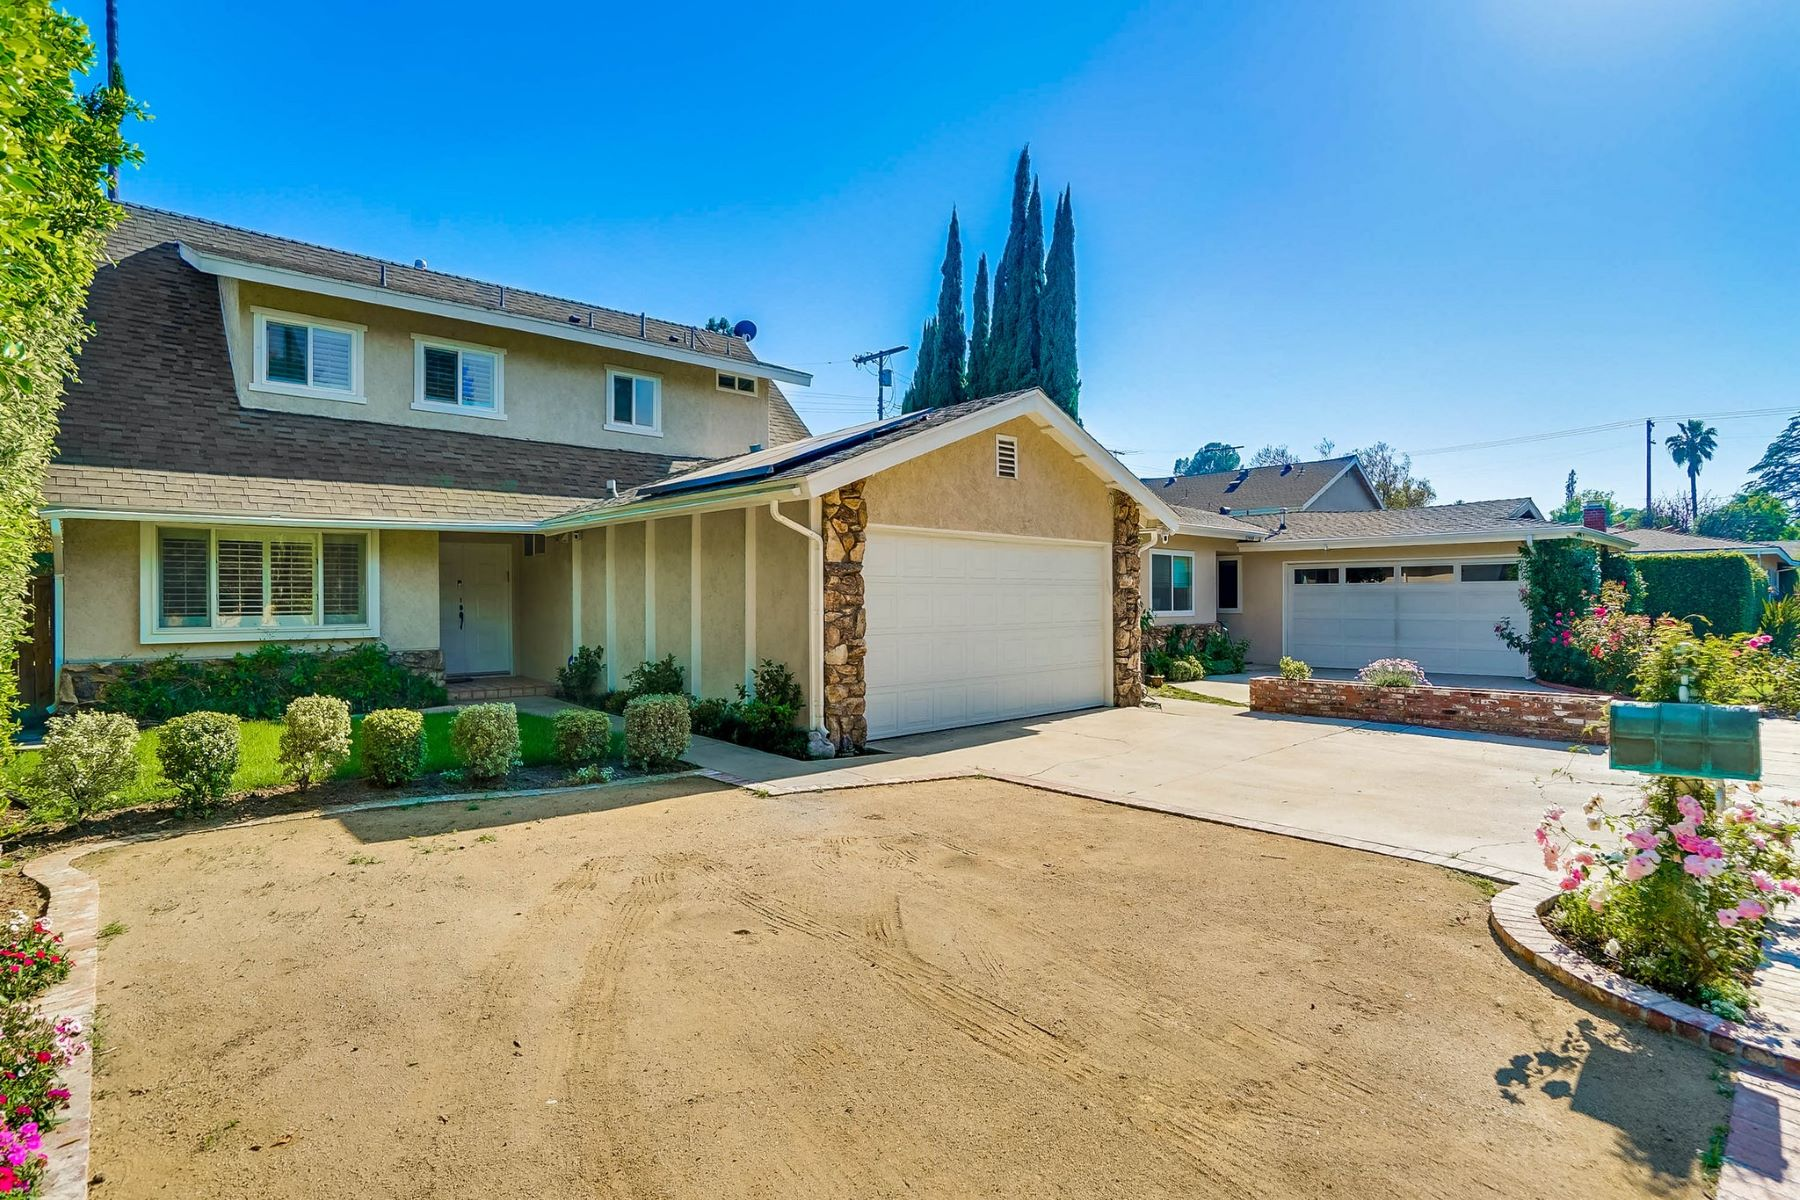 Single Family Homes for Active at 13442 Sunnyview Lane Valley Glen, California 91401 United States